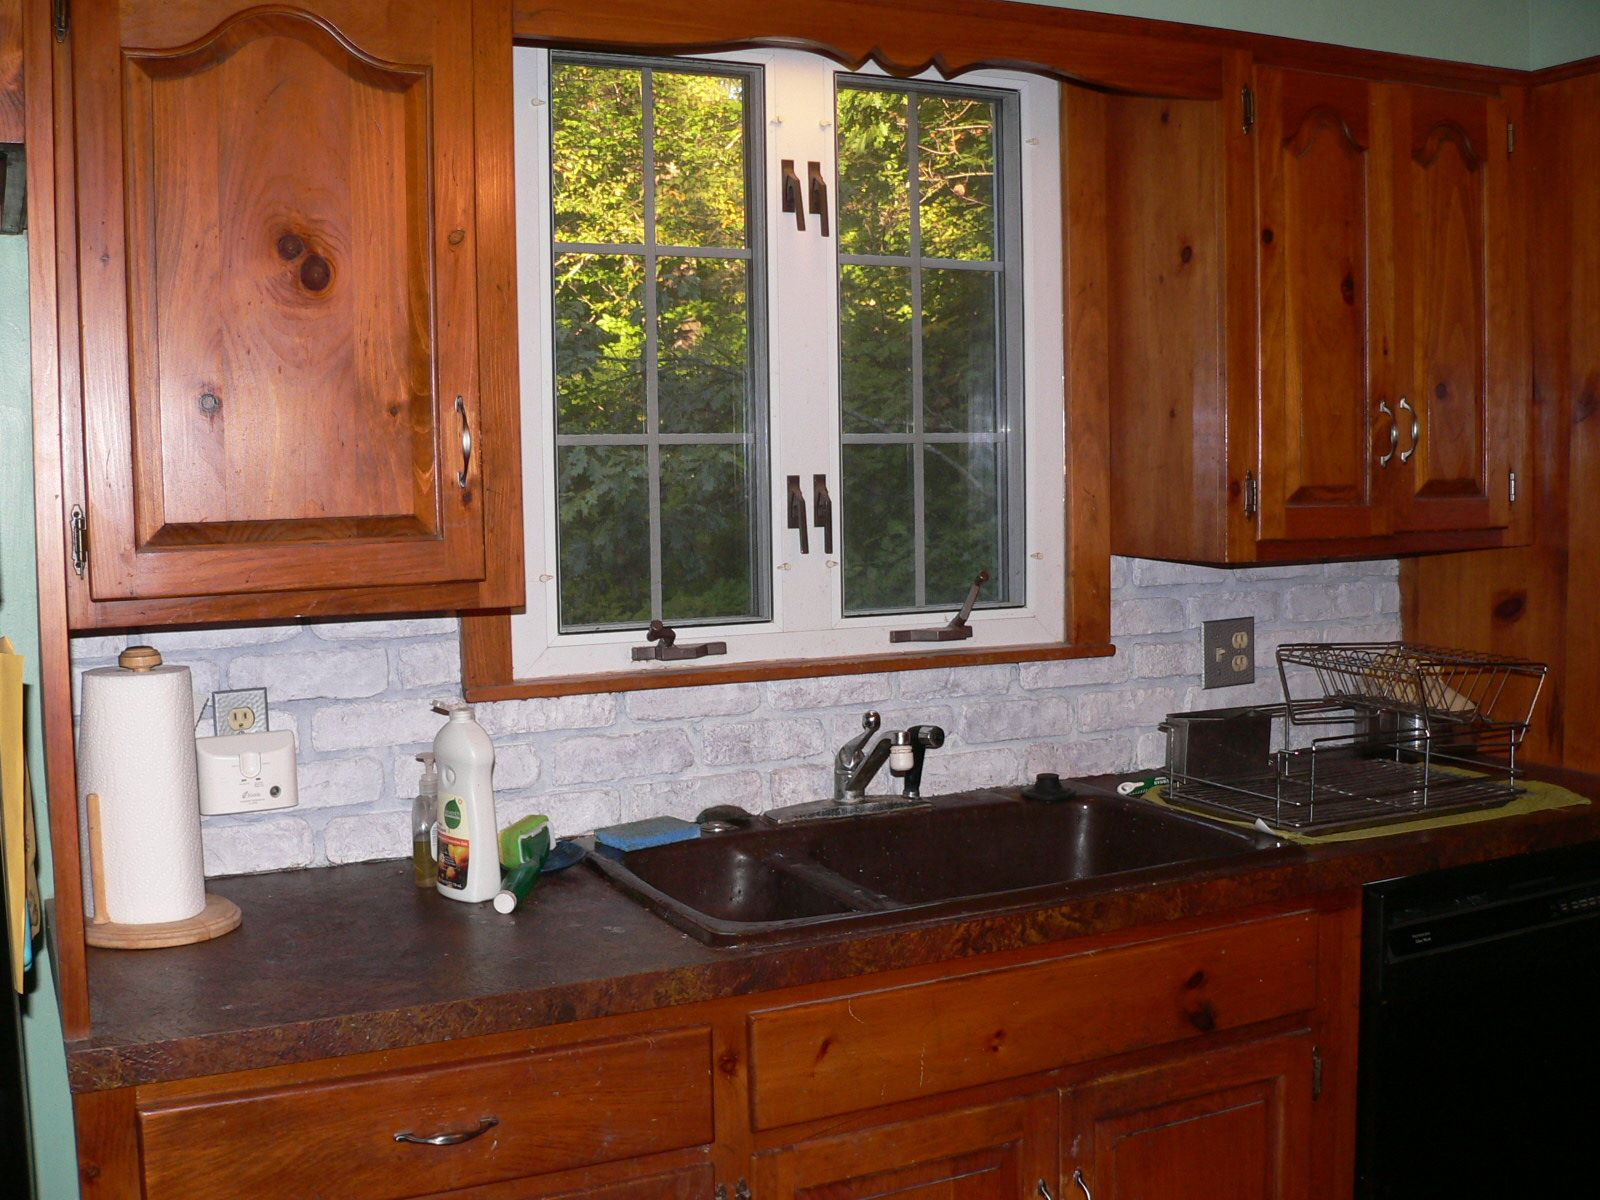 Window under kitchen cabinets  cool perfect kitchen nook bay window ideas  kitchen ideas  pinterest